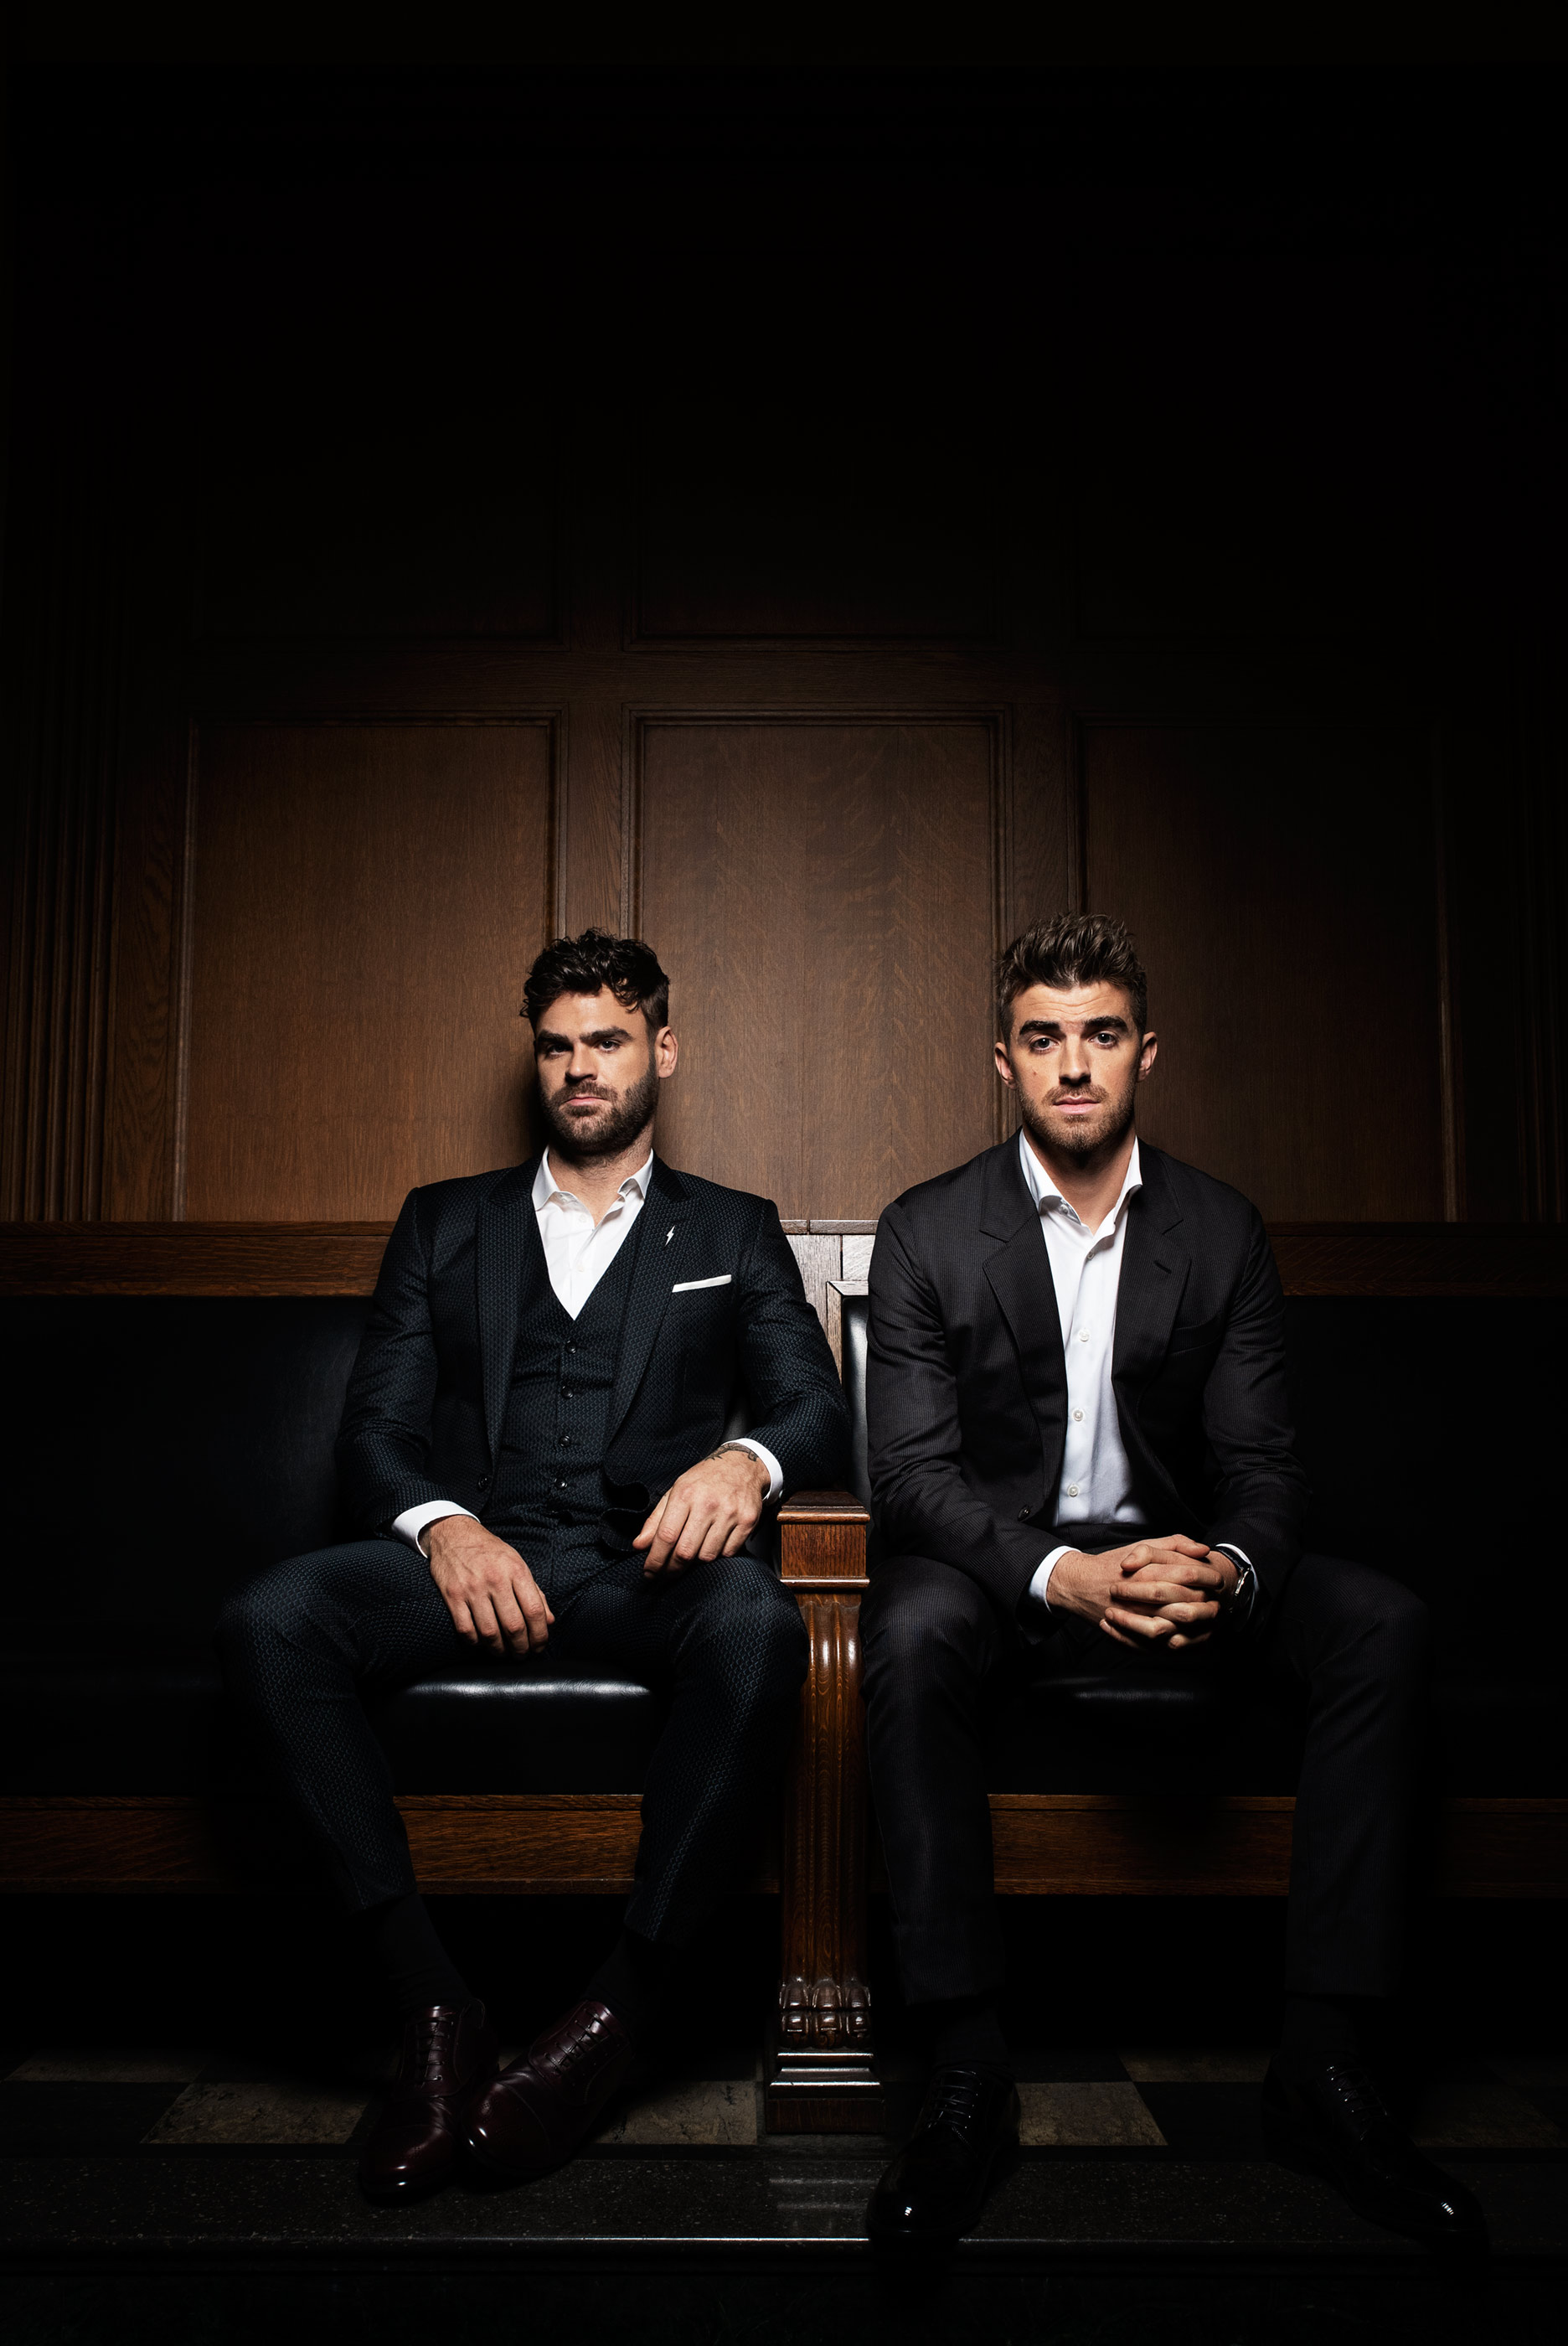 THE_CHAINSMOKERS_020_WEB